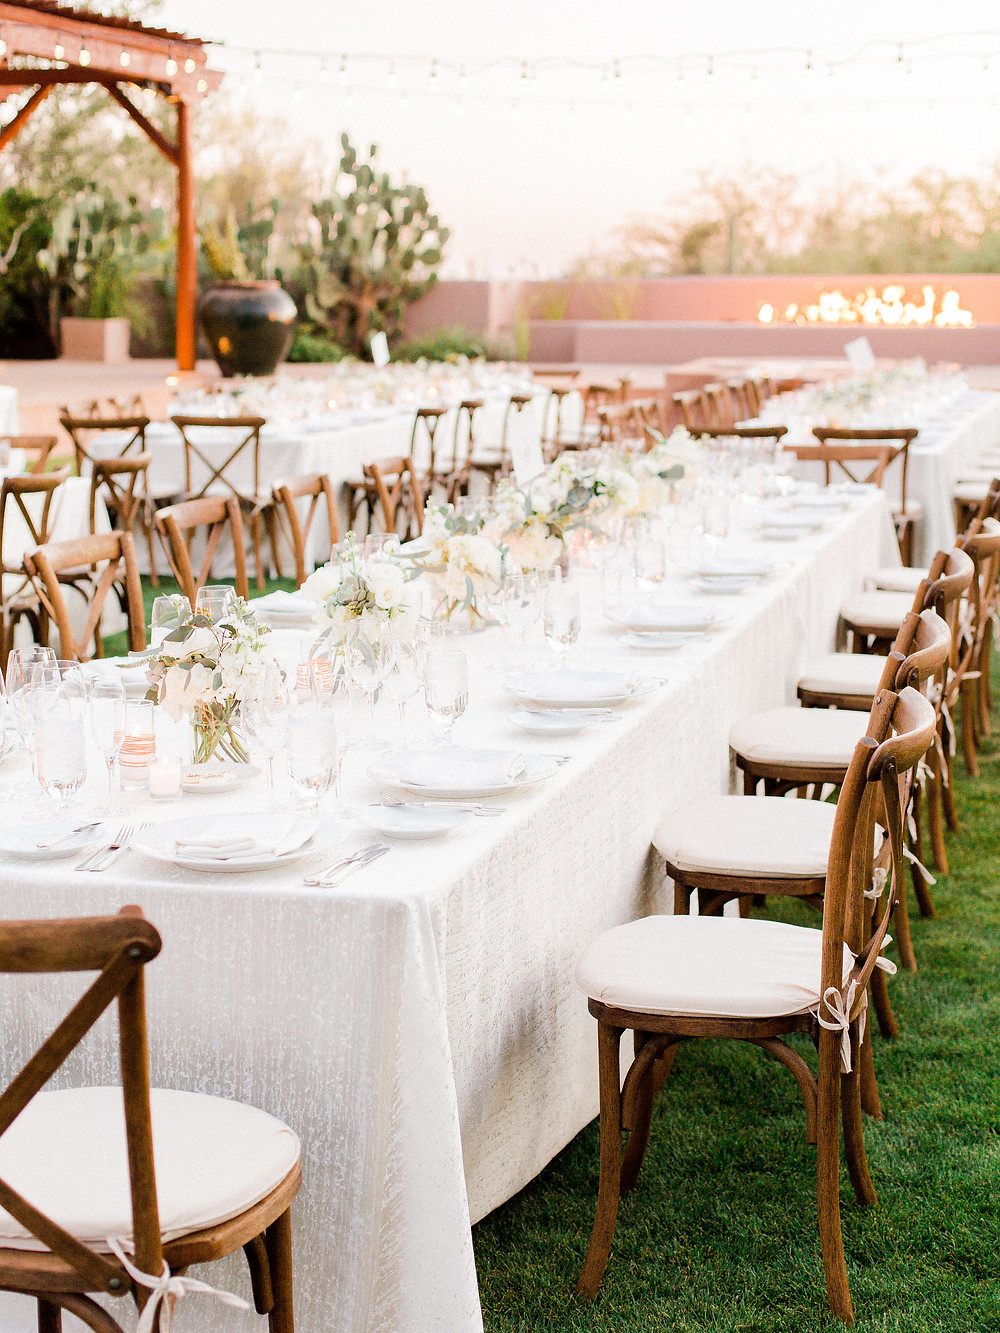 Four Seasons in Scottsdale Arizona Dinner Al Fresco on Main Lawn